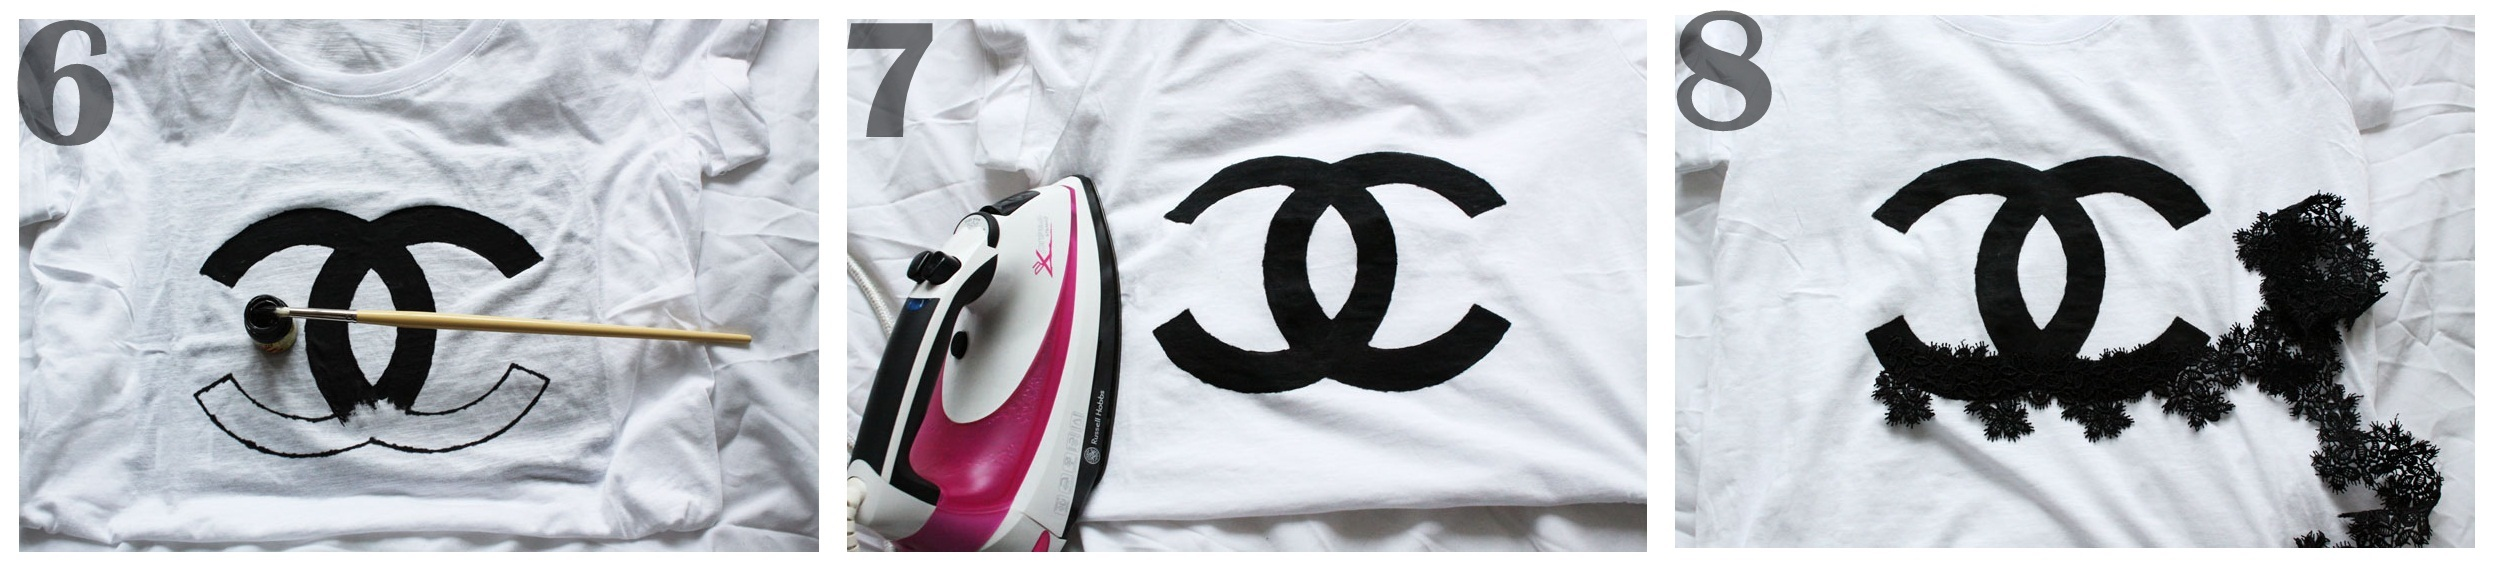 Chanel Logo Shirt Diy 69